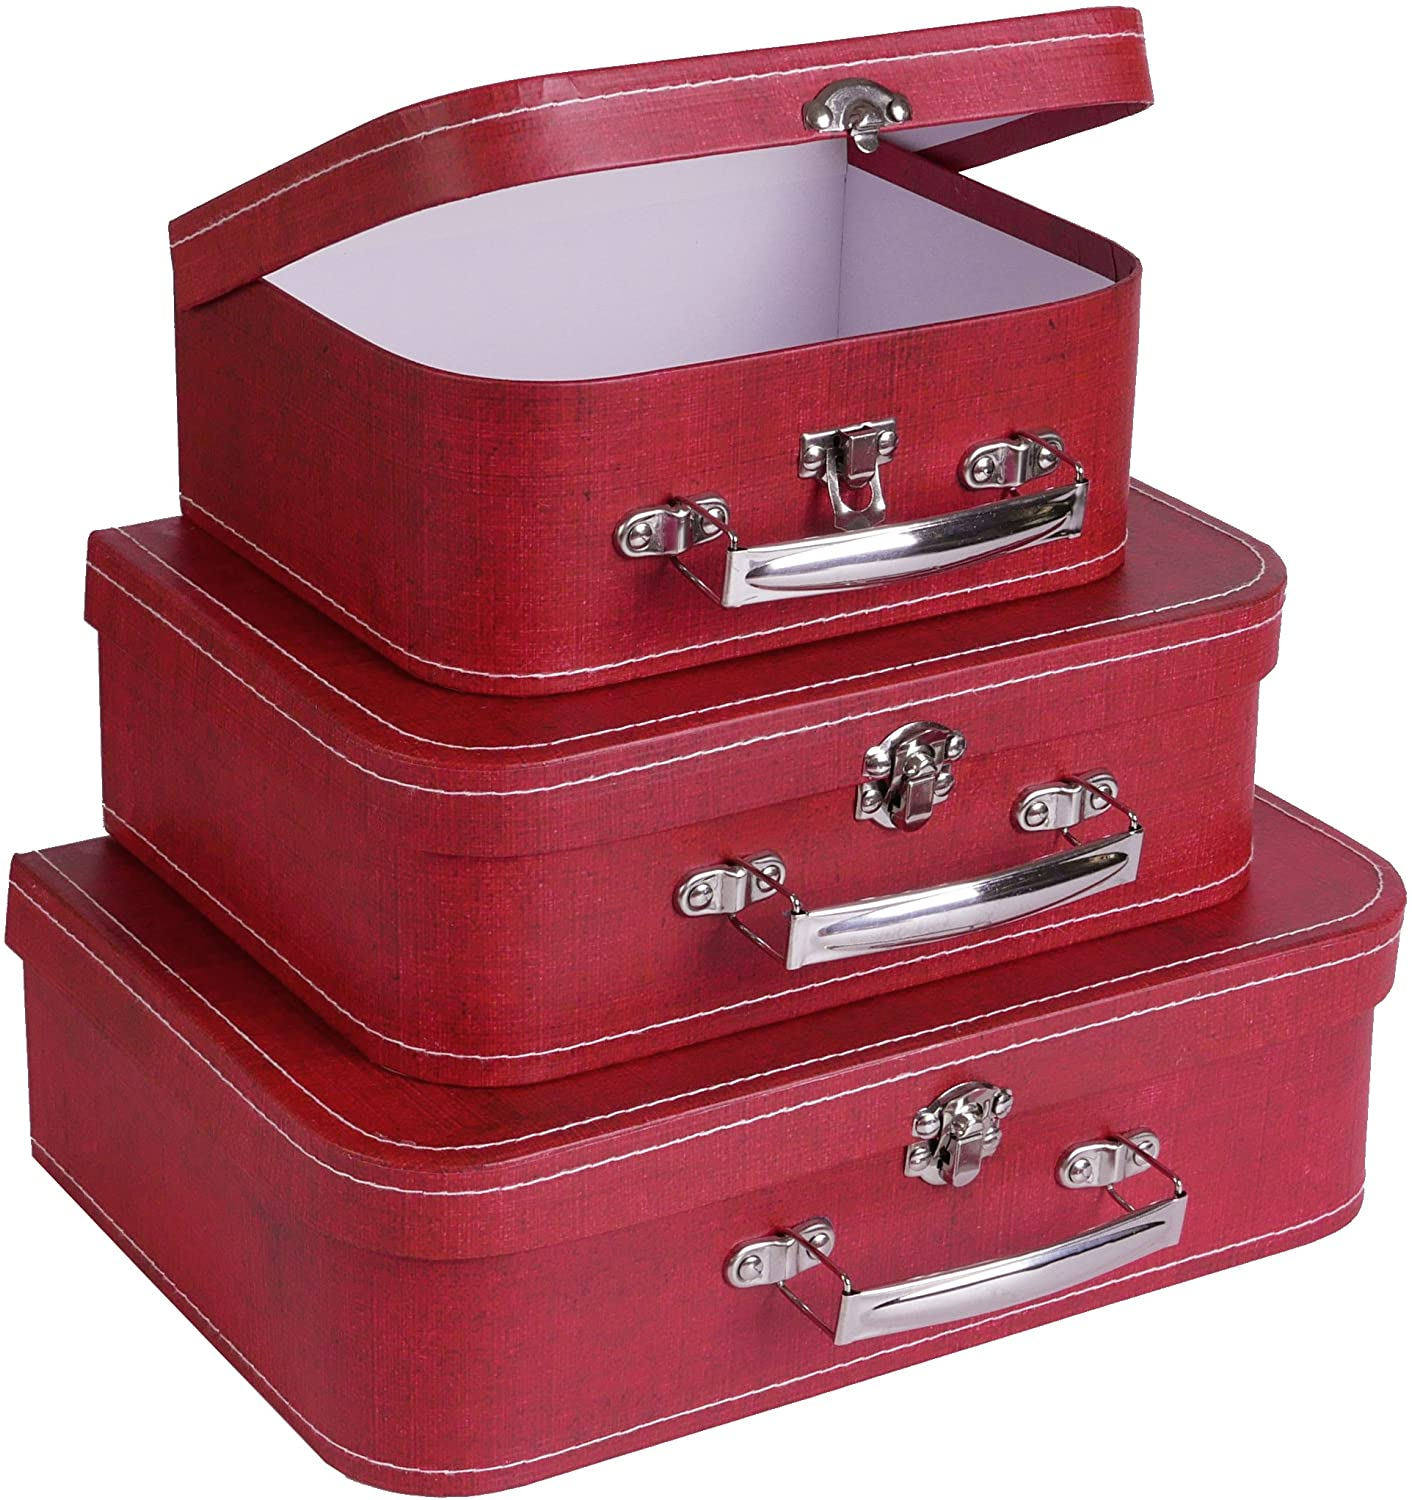 SLPR Cardboard Suitcase Boxes with Handle (Set of 3, Distressed Red) | Paperboard Boxes with Lids for Wedding Decoration Birthday Parties